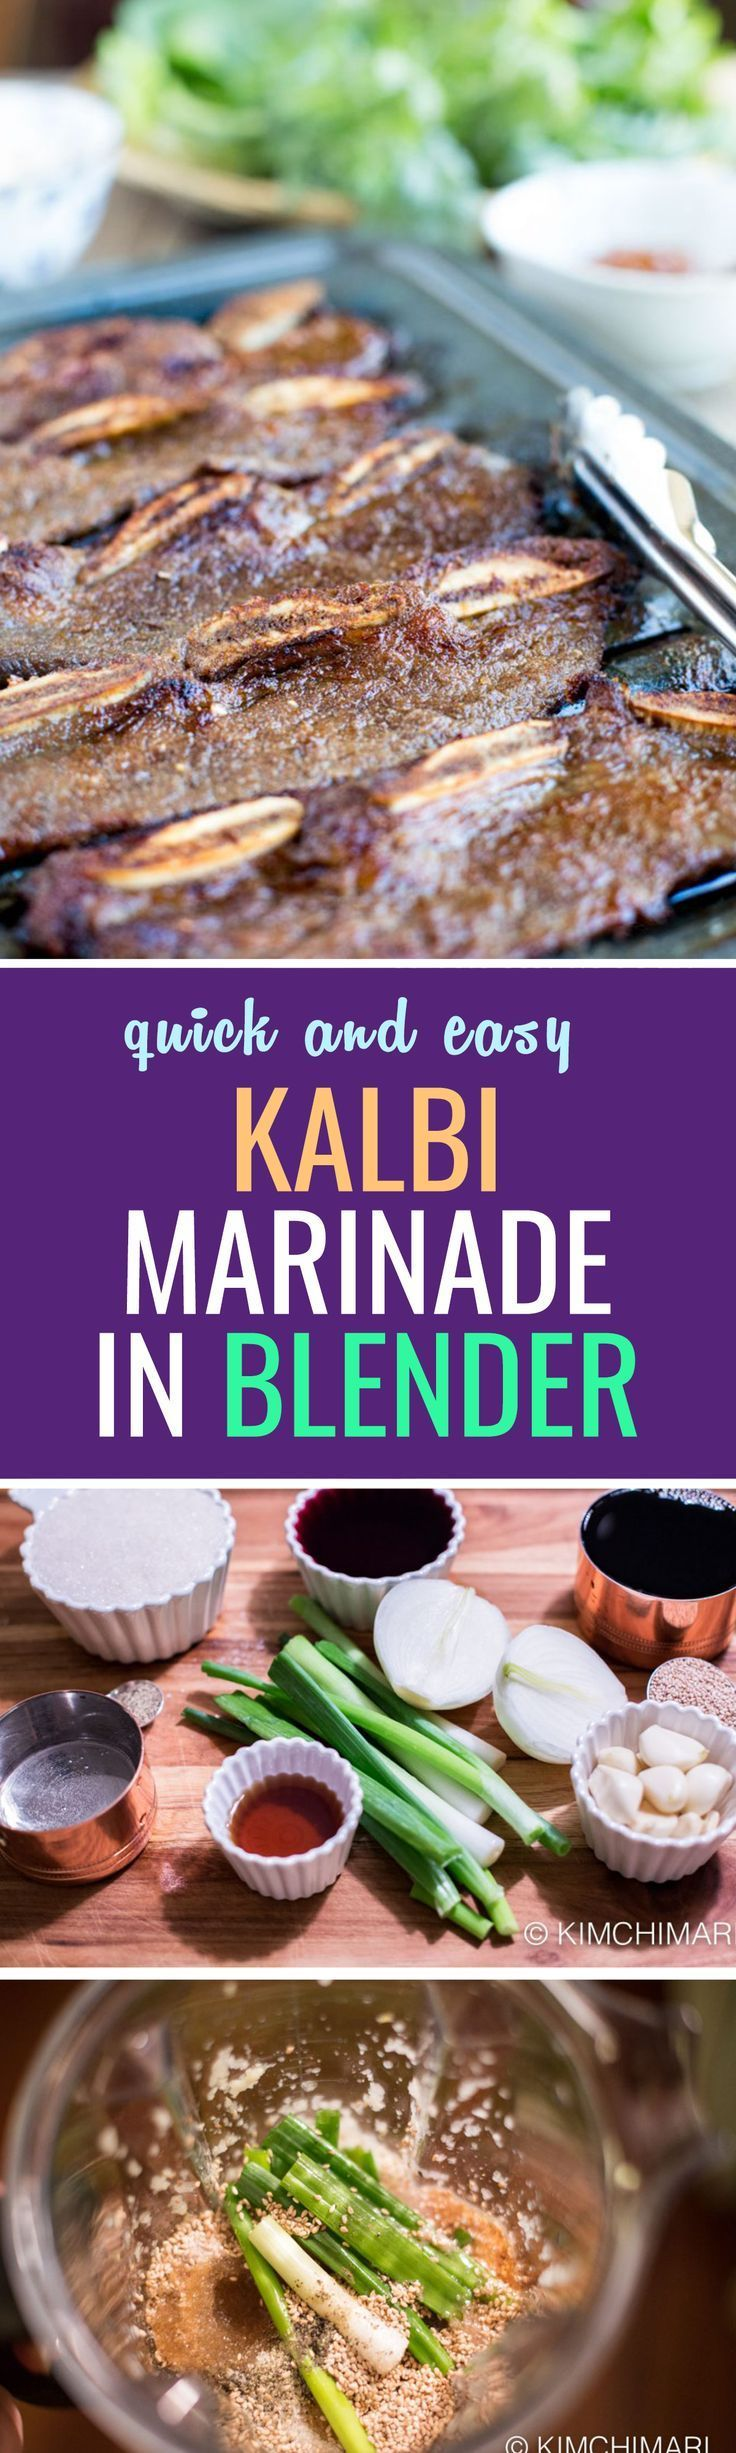 4th of July! Easy Kalbi marinade made in a blender! Perfect for a Korean bbq and the clean up is simpler :)